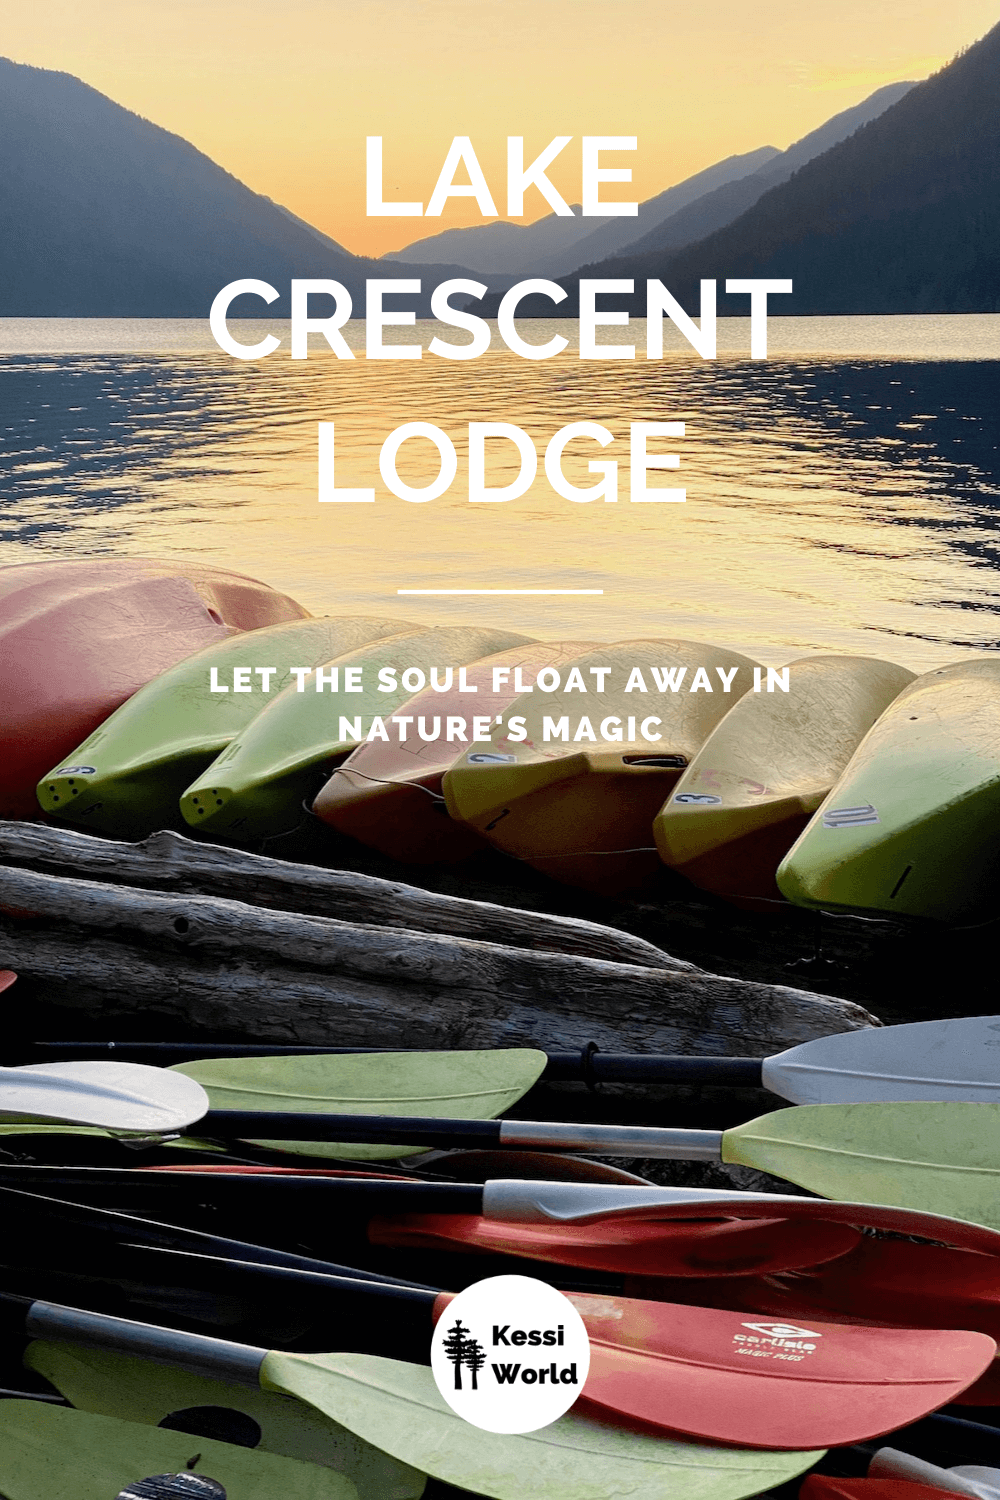 This Pinterest tile shows a pile of different colored kayaks and the corresponding paddles closed up for the night as the sun sets behind the high mountains surrounding peaceful Lake Crescent. The yellowish sunset glow covers the surface of the lake.